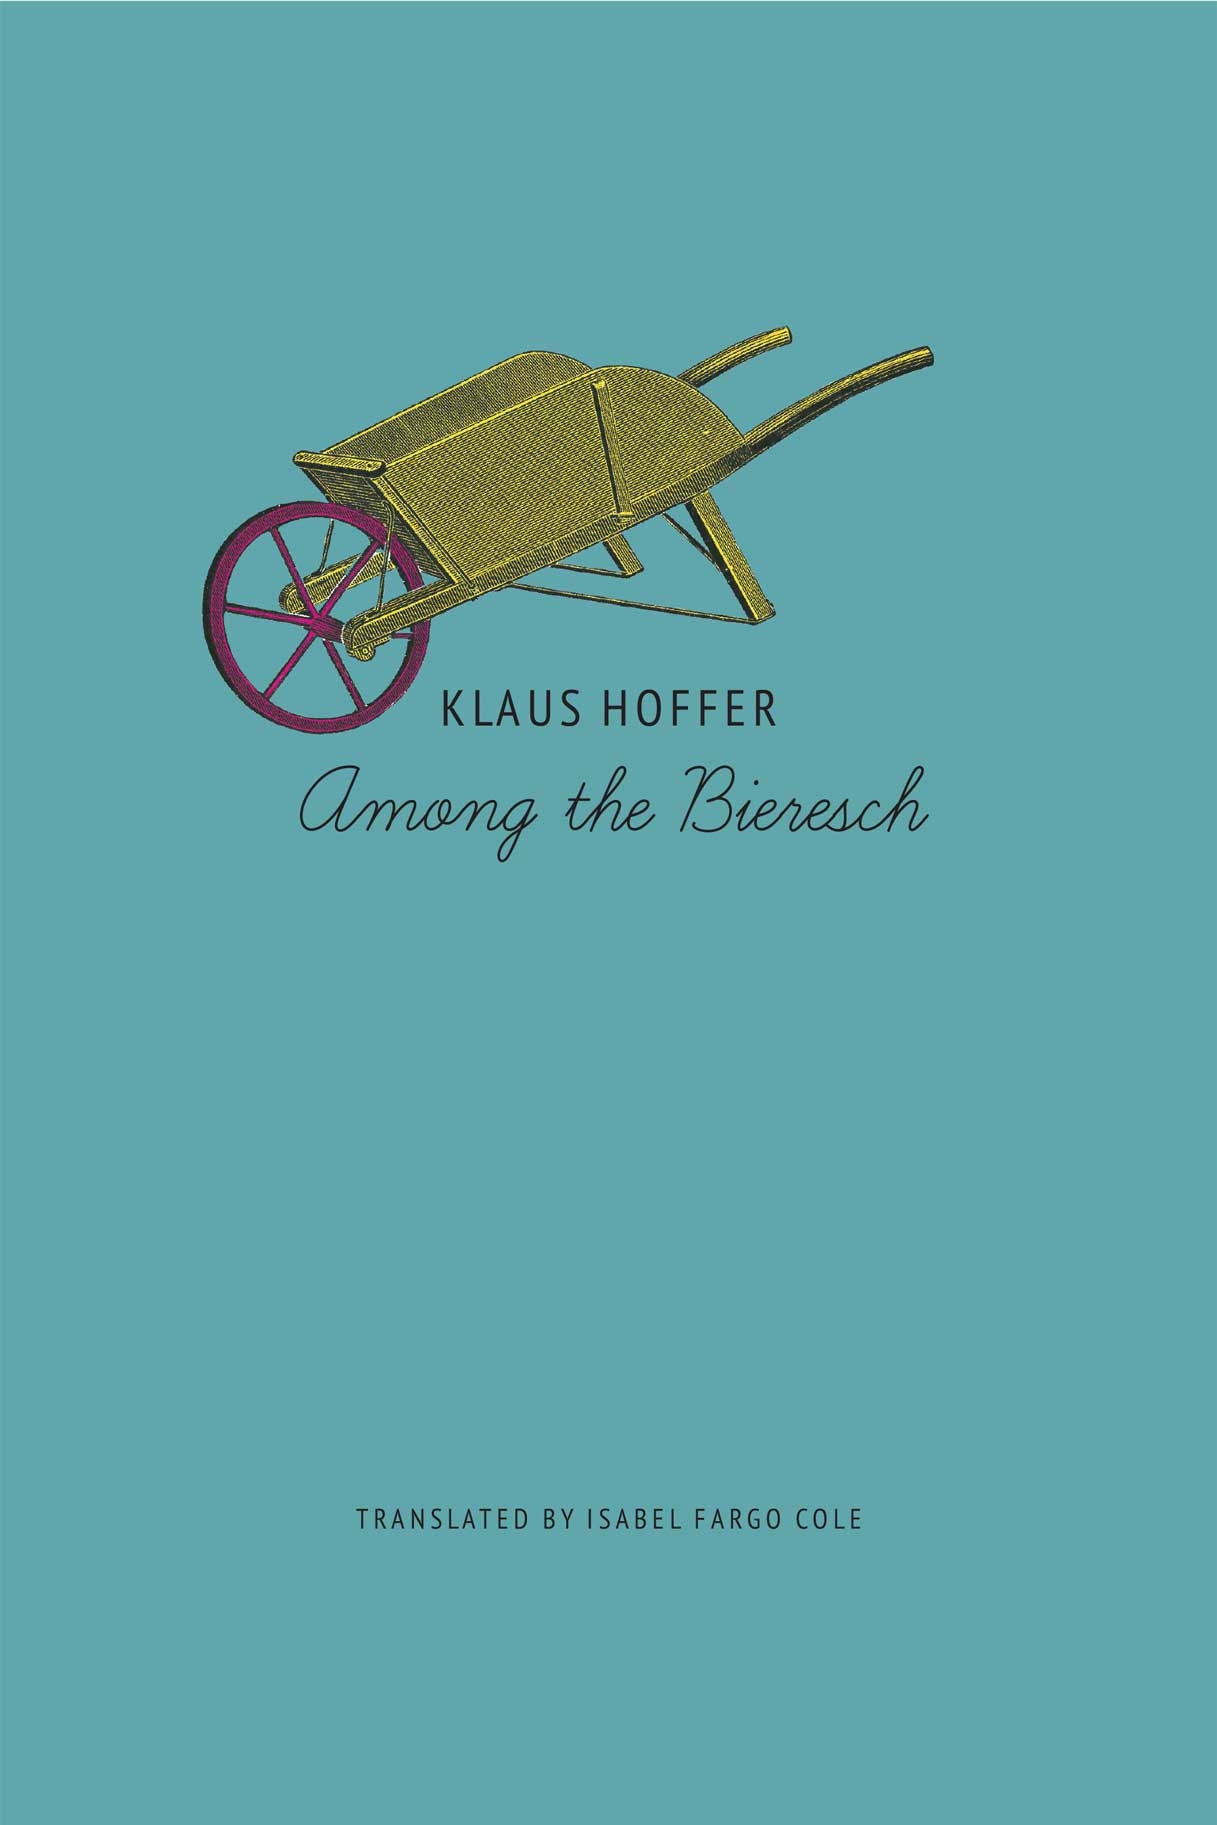 Among the Bieresch by Klaus Hoffer |  Seagull Books